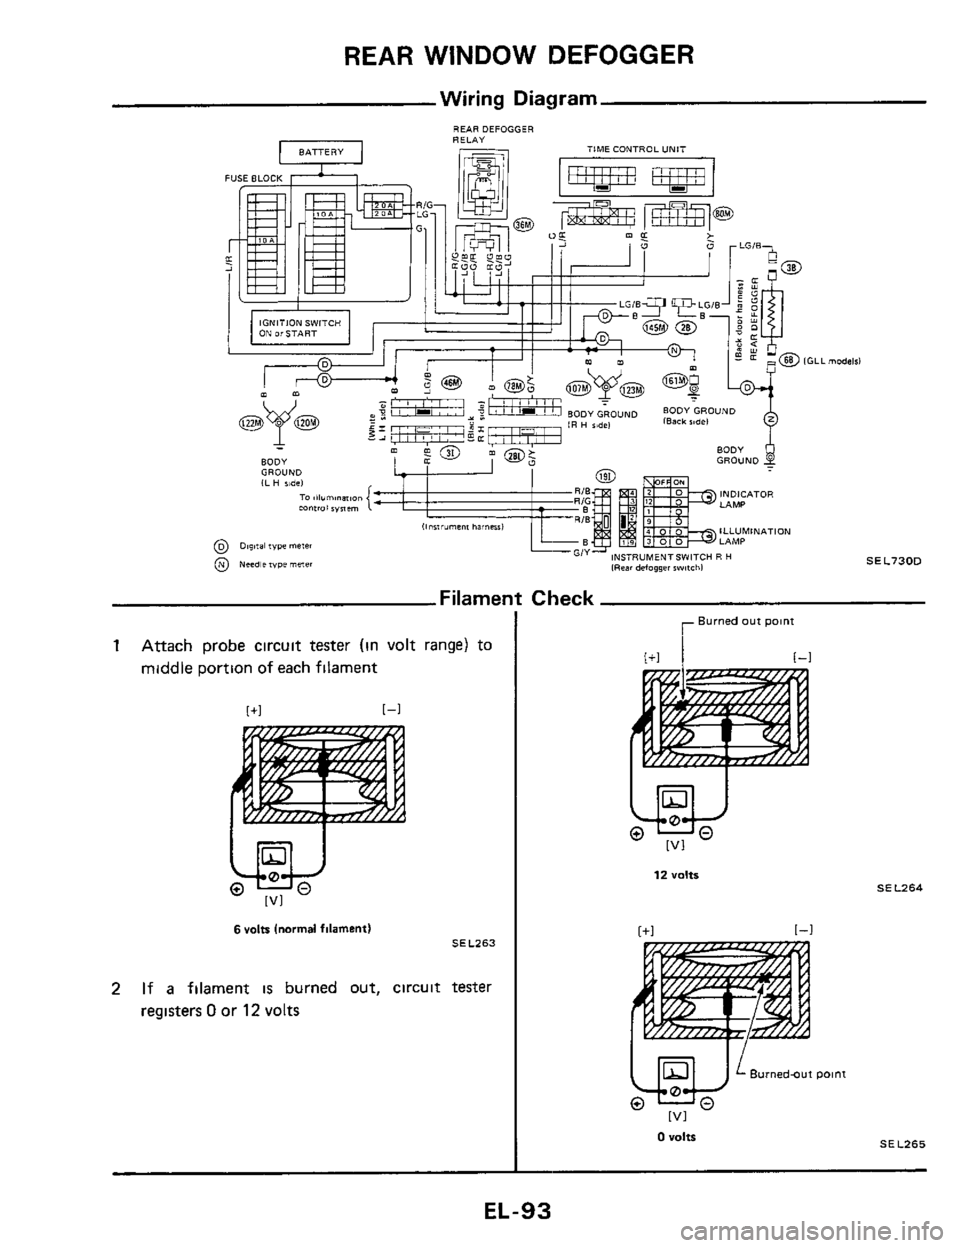 Nissan Juke Fuse Panel Diagram. Nissan. Auto Fuse Box Diagram